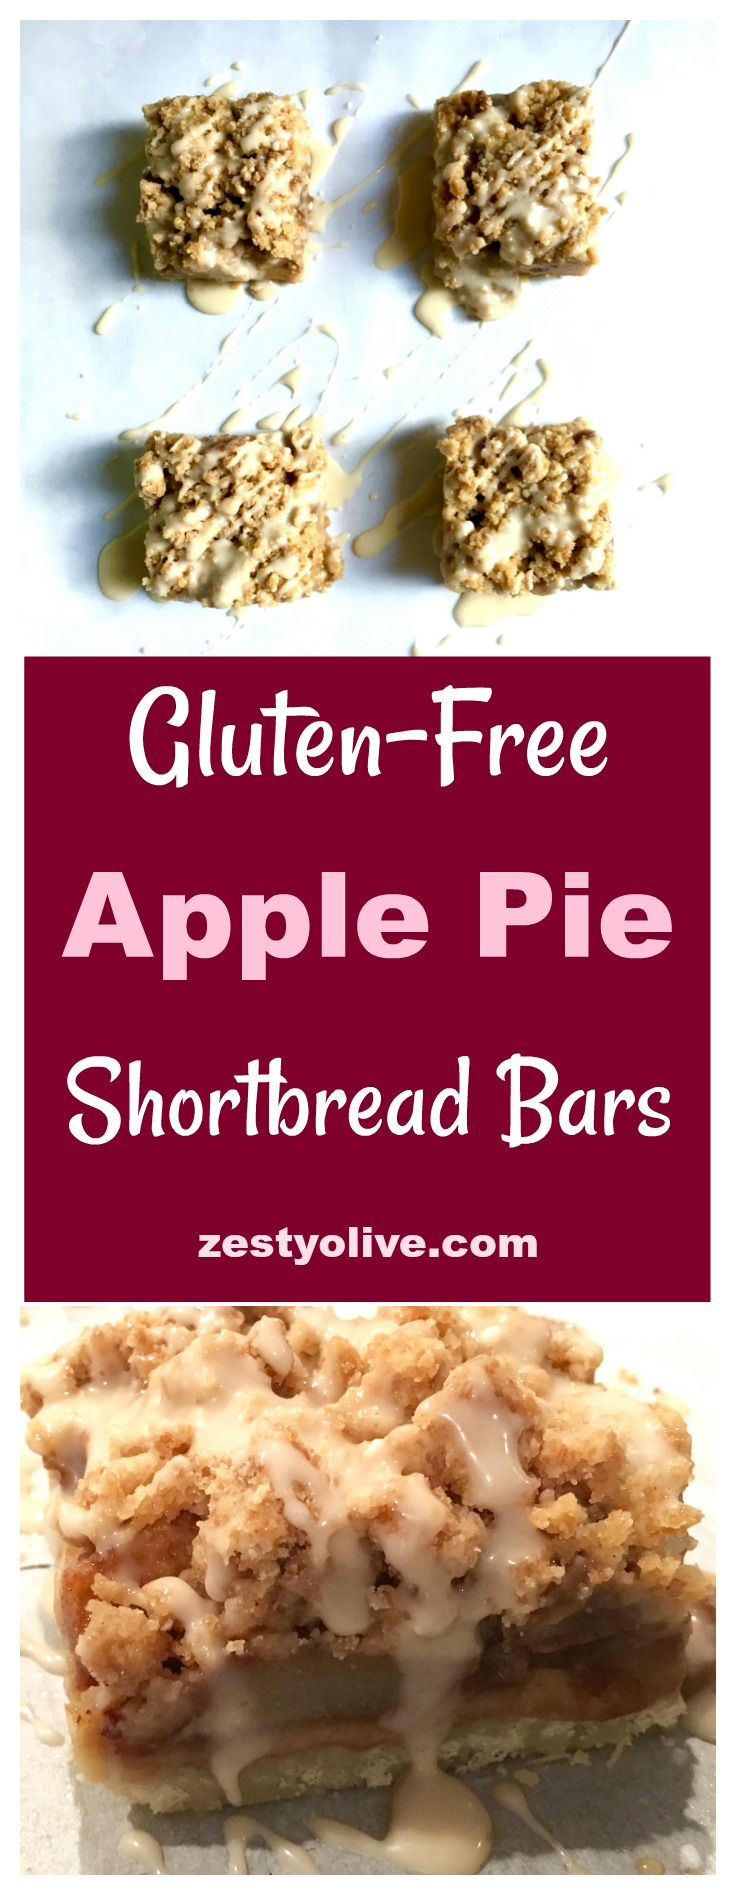 Gluten Free Apple Pie Shortbread Bars